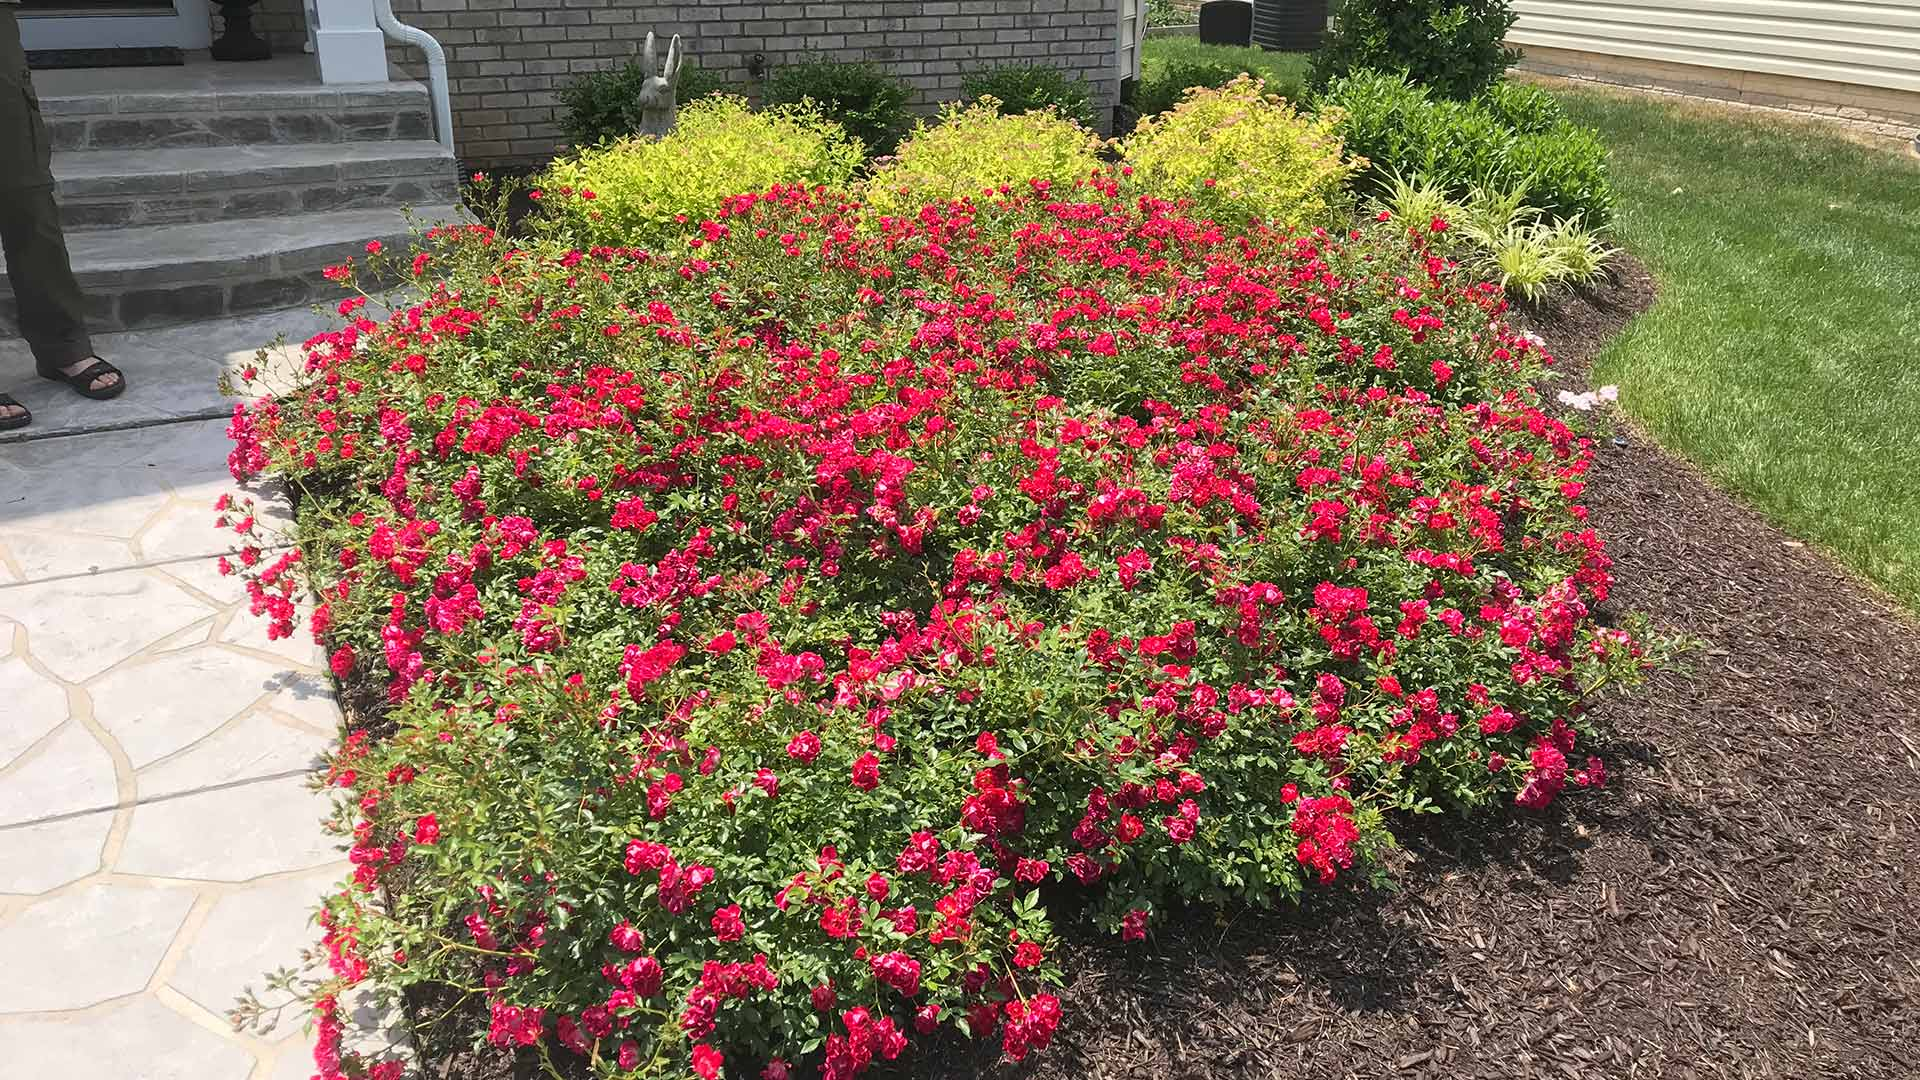 Landscape bed and annual flowers in Warrenton, VA.